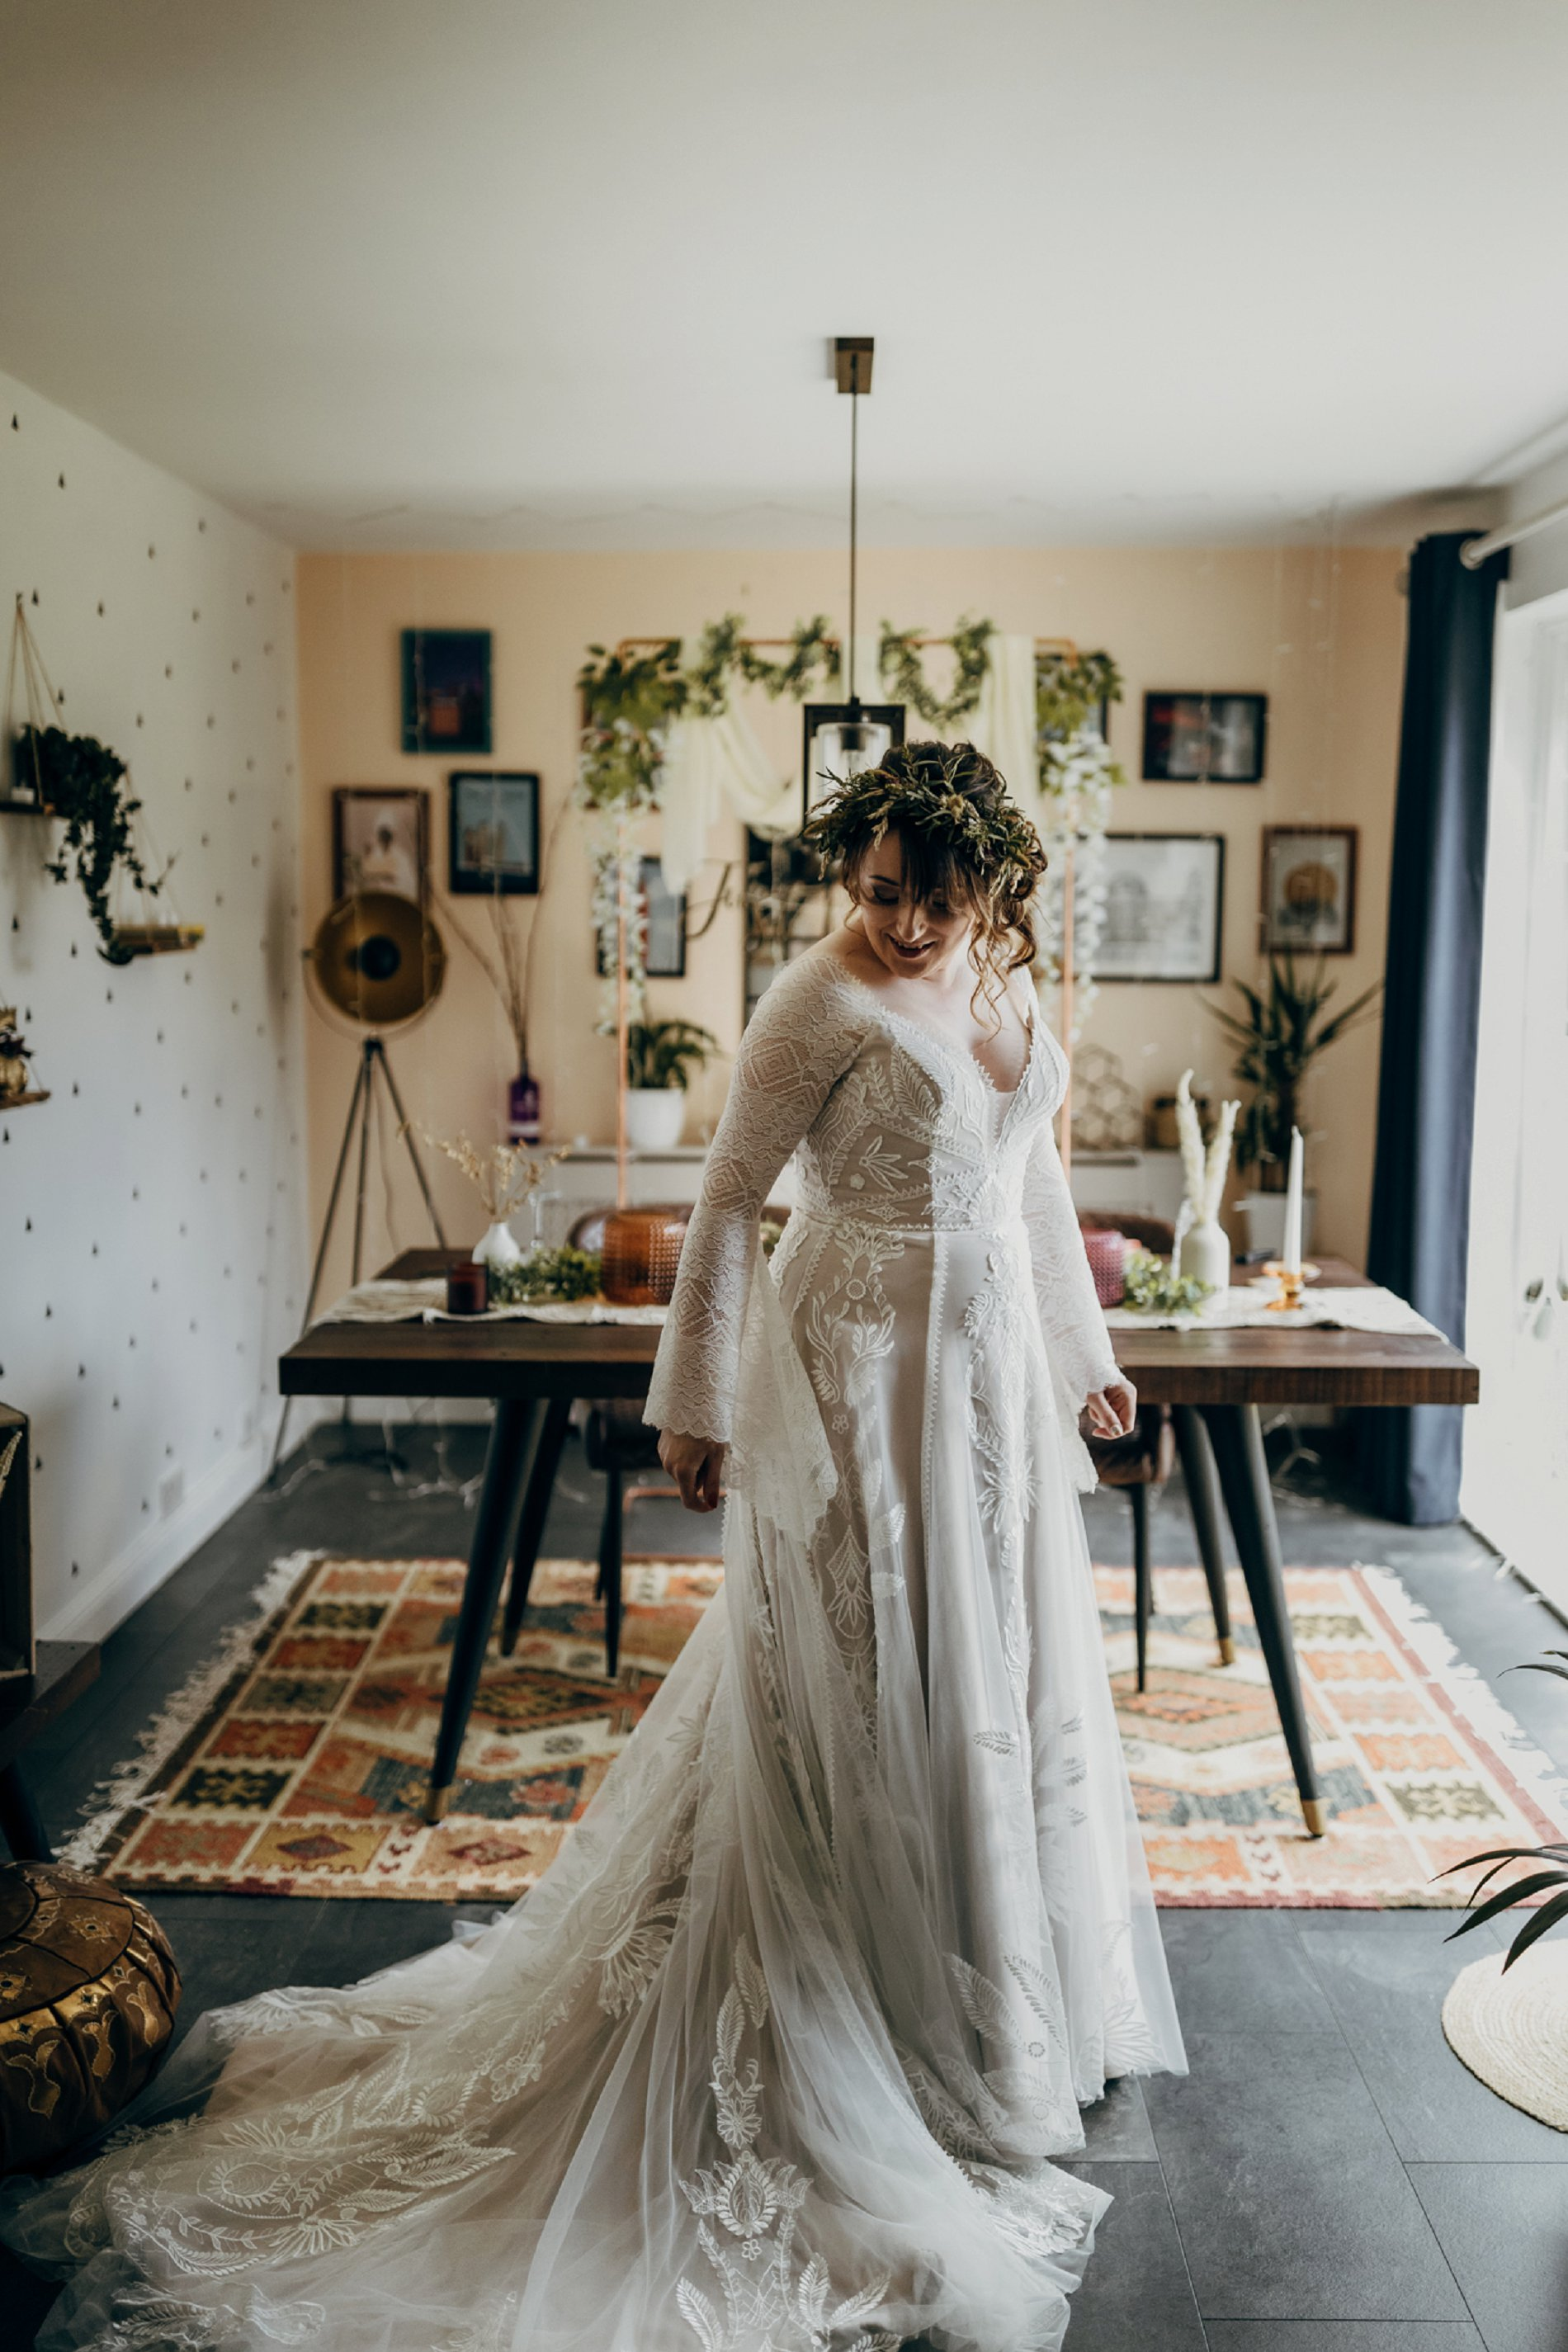 Northumberland Elopement (c) Chocolate Chip Photography (24)